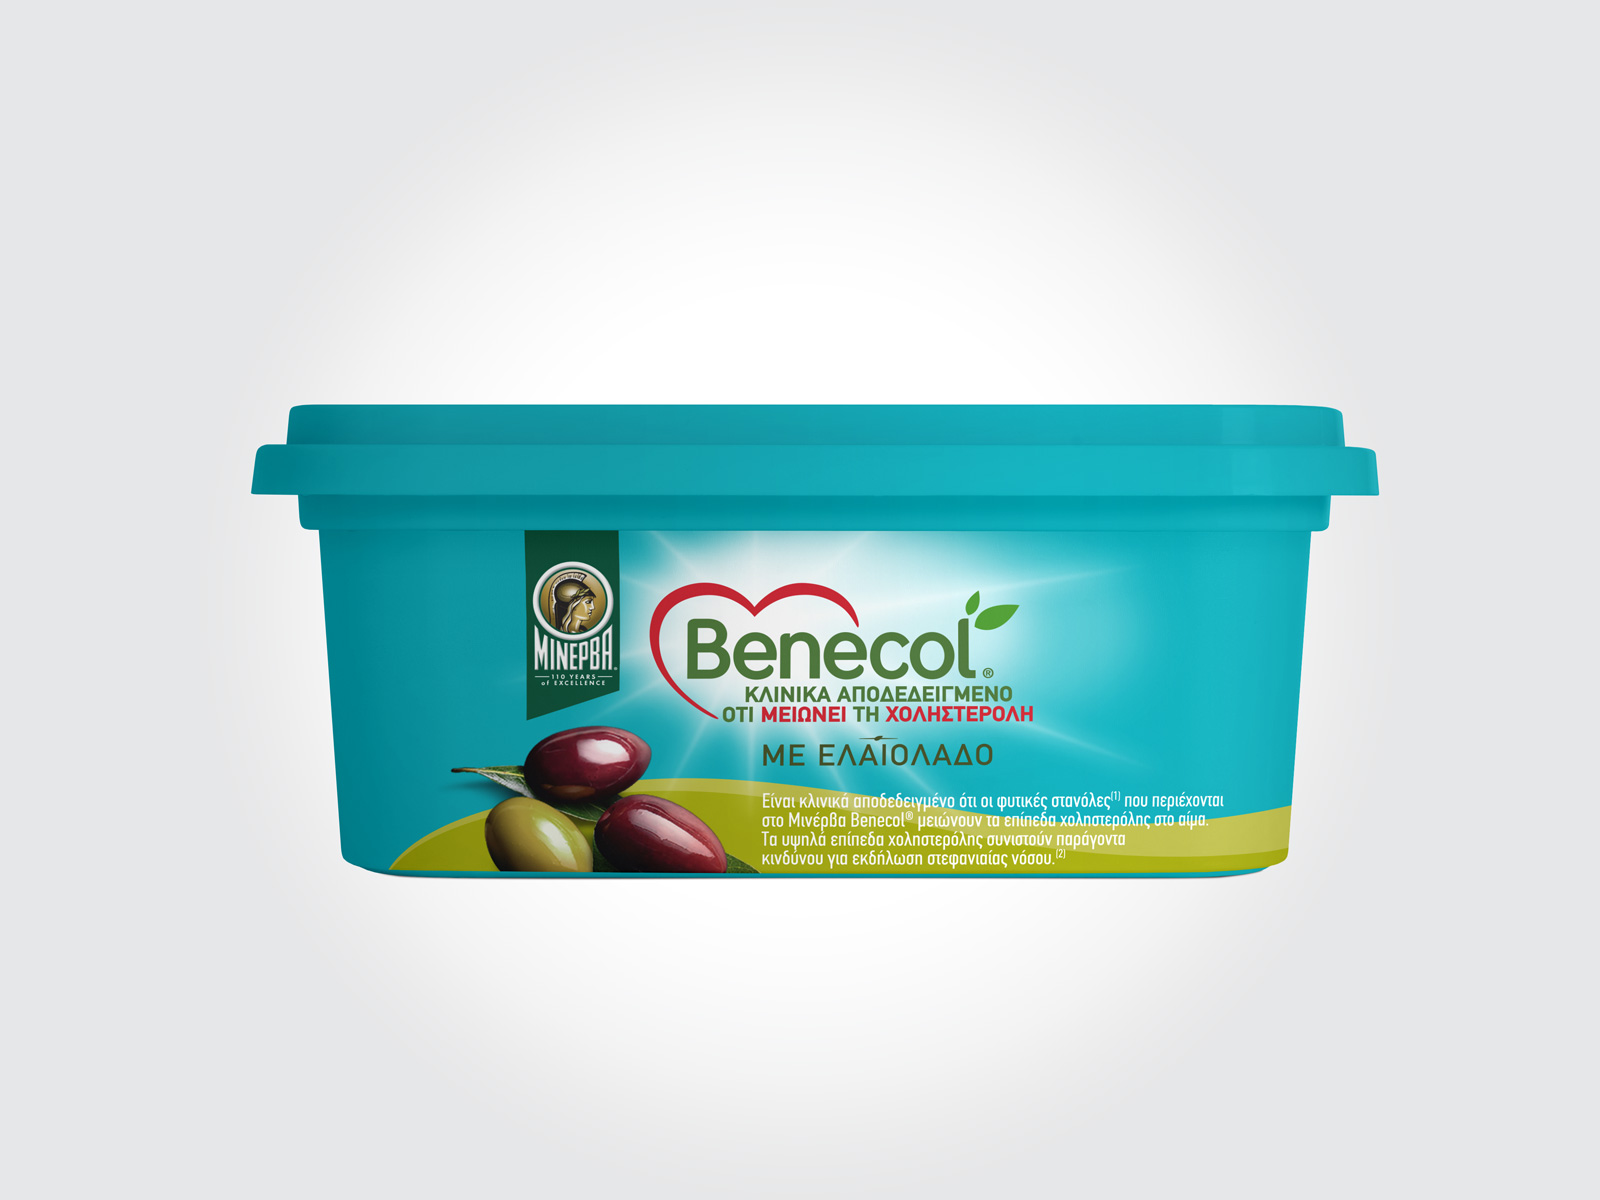 Benecol 2019 Olive Oil side view